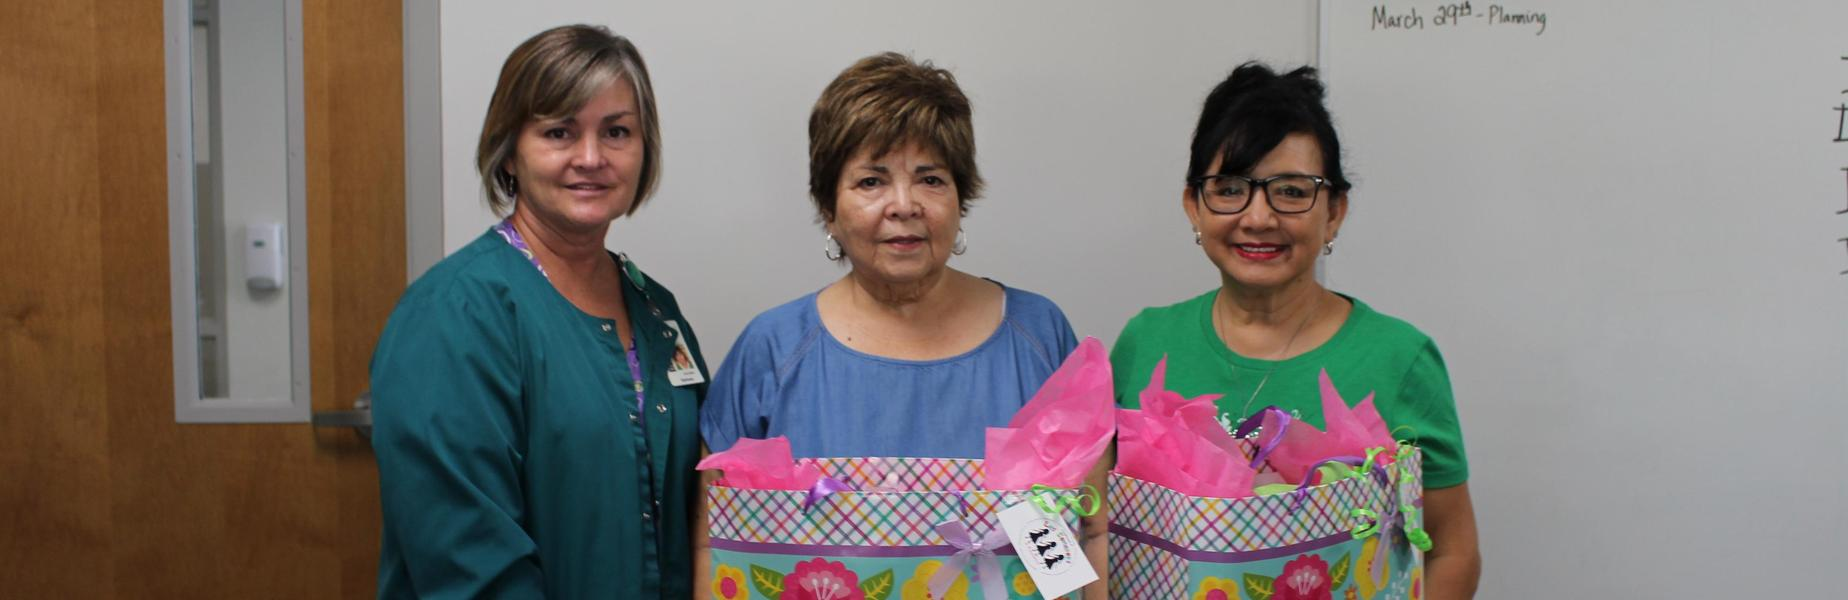 LADIES WITH GIFT BAGS